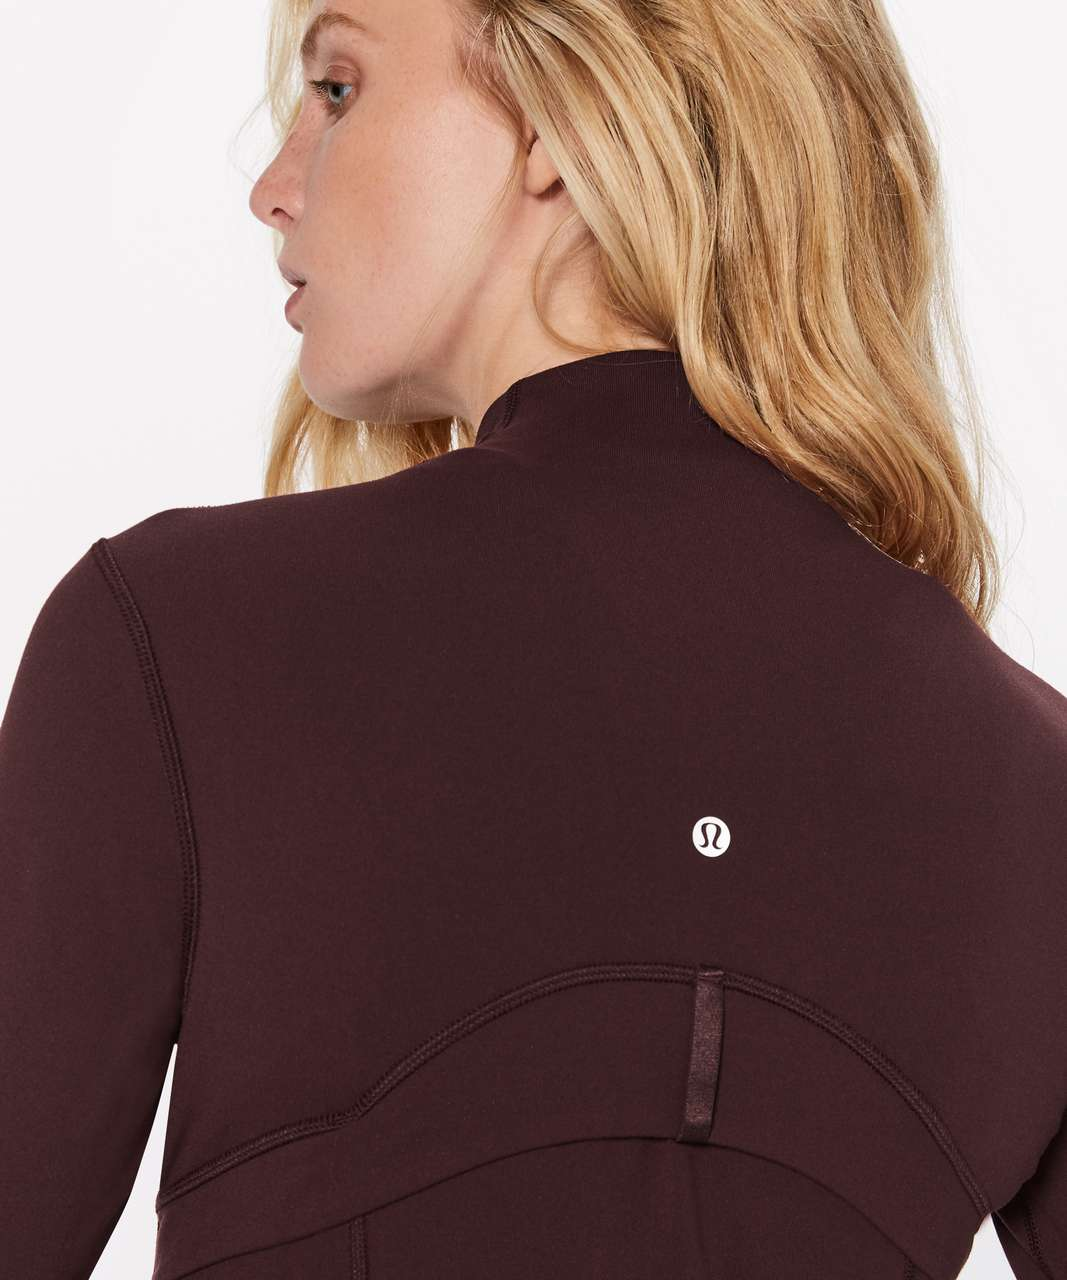 Lululemon Define Jacket - Garnet